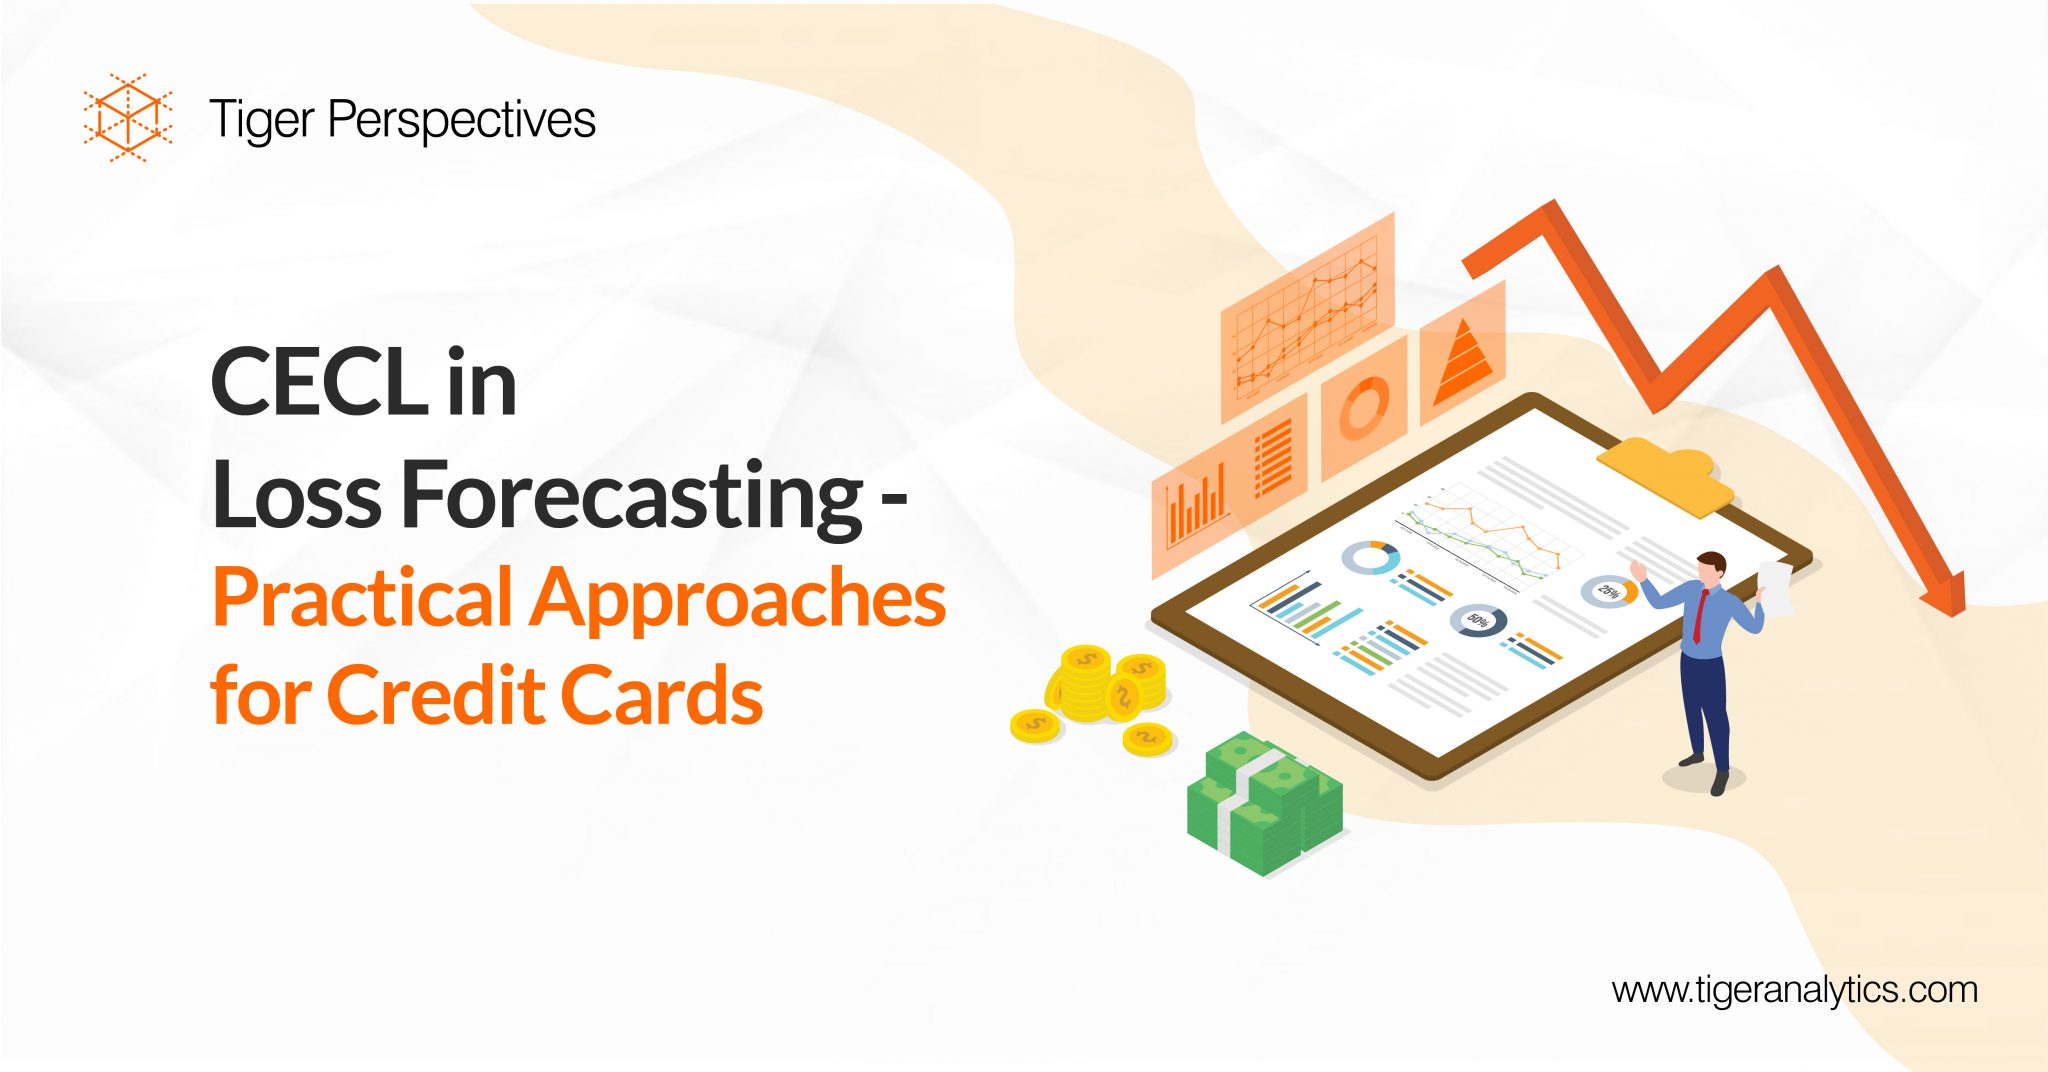 CECL in Loss Forecasting – Practical Approaches for Credit Cards